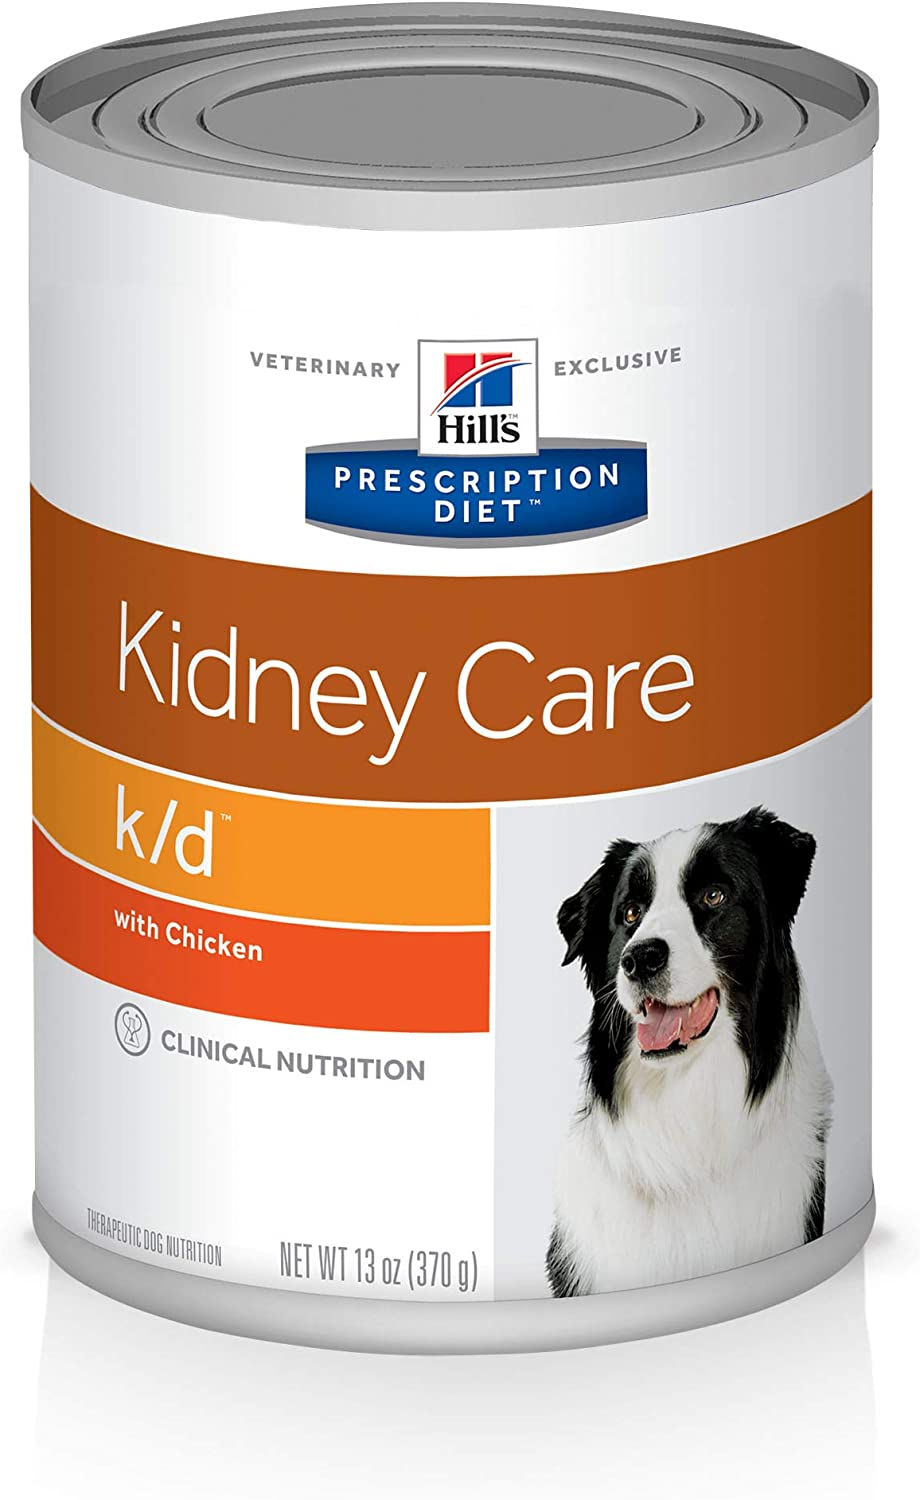 Hill's Prescription Diet k/d Kidney Care with Chicken Canned Dog Food, 13 oz, 12-pack wet food